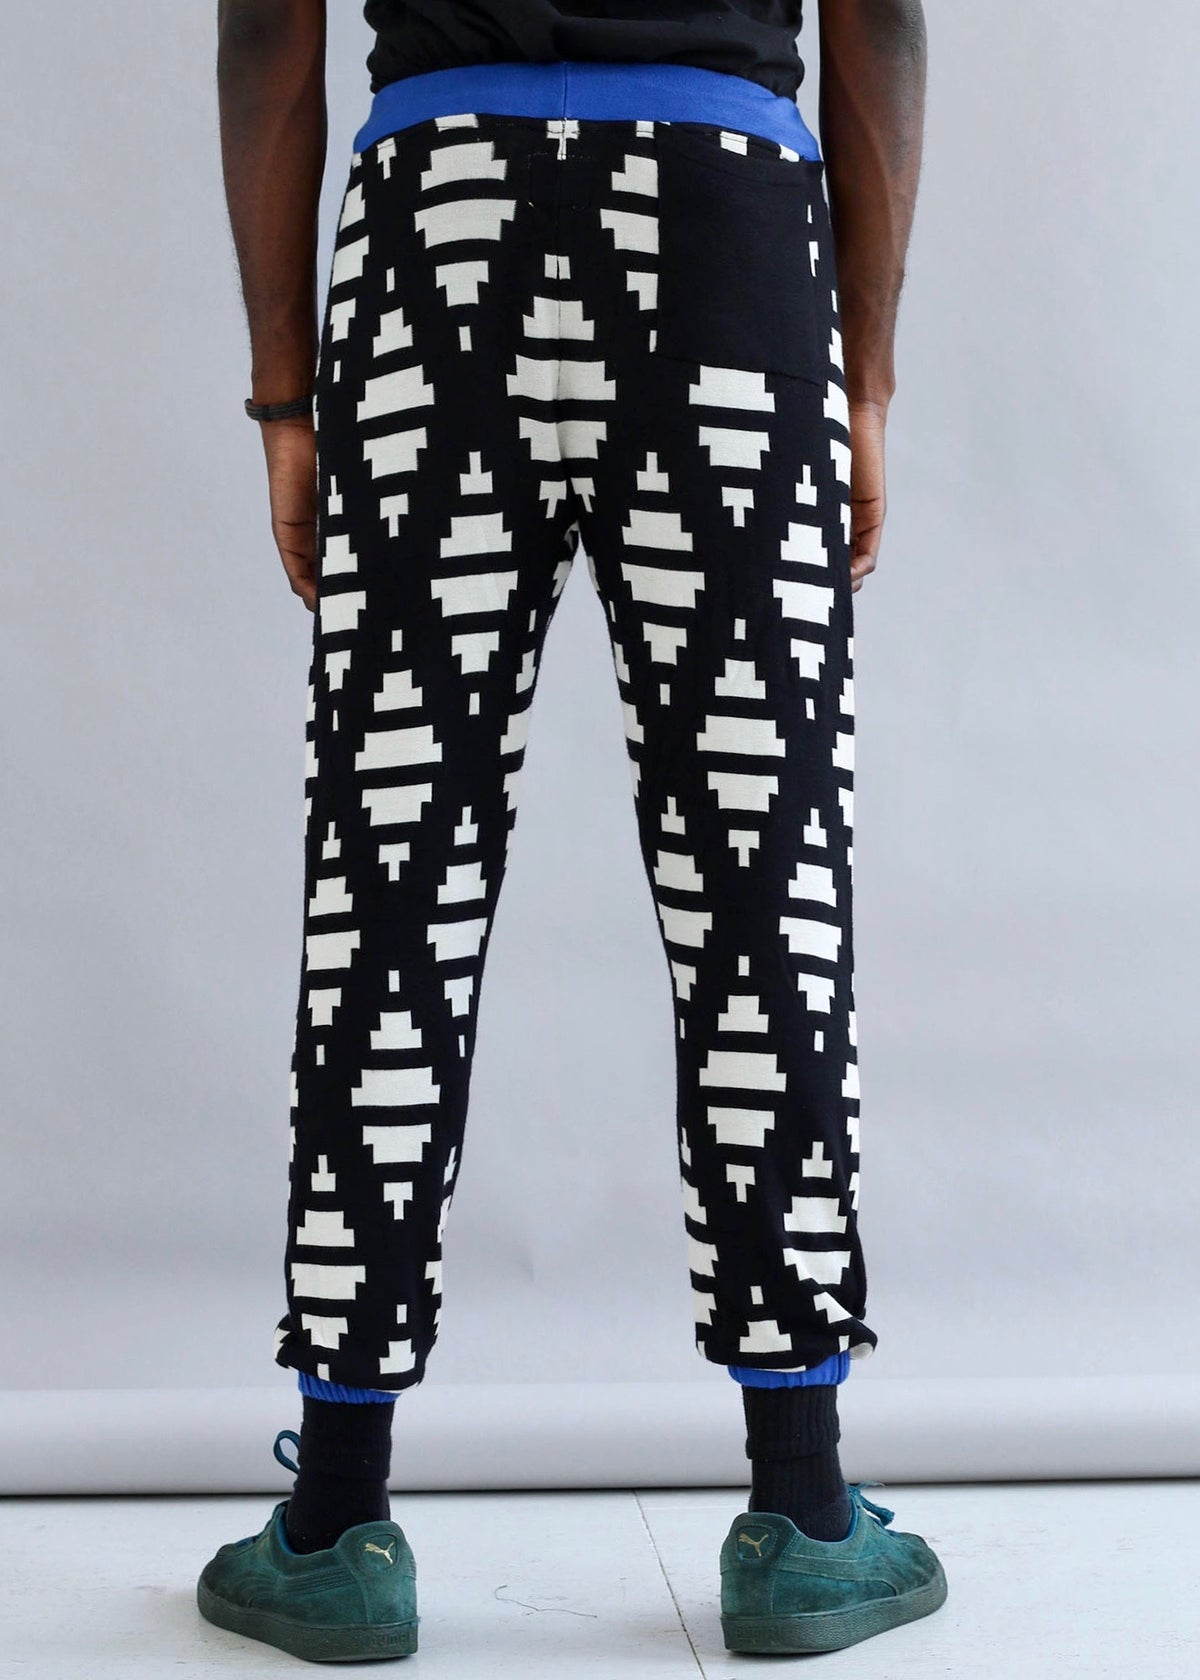 Cotton printed jogger pants with elastic waistband and drawstring from MaXhosa by Laduma.